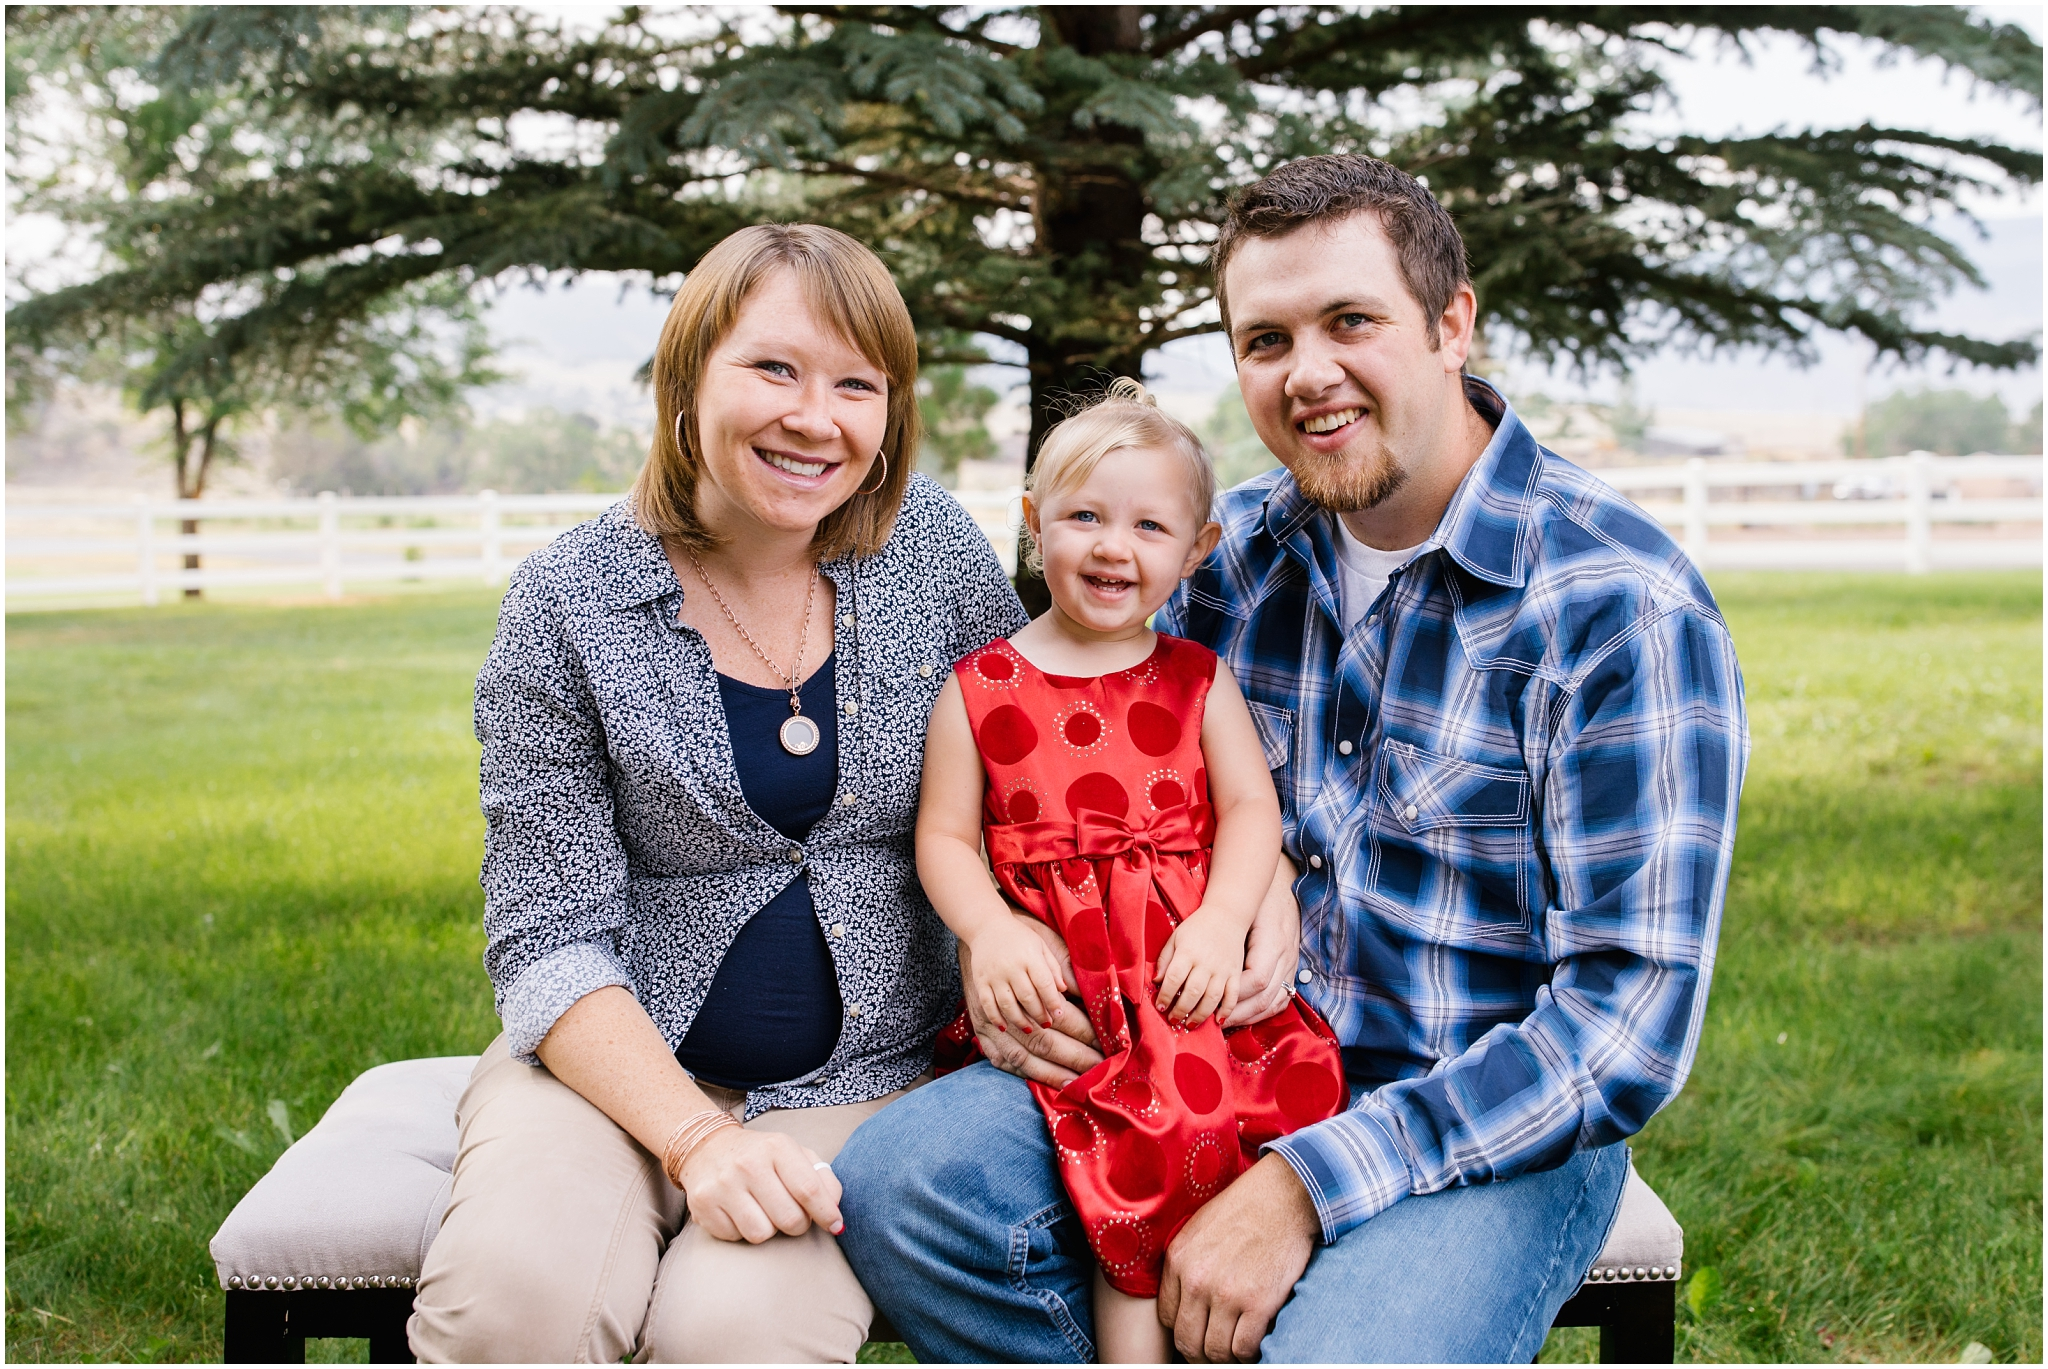 Brinkerhoff-38_Lizzie-B-Imagery-Utah-Family-Photographer-Central-Utah-Photographer-Utah-County-Extended-Family-Session.jpg